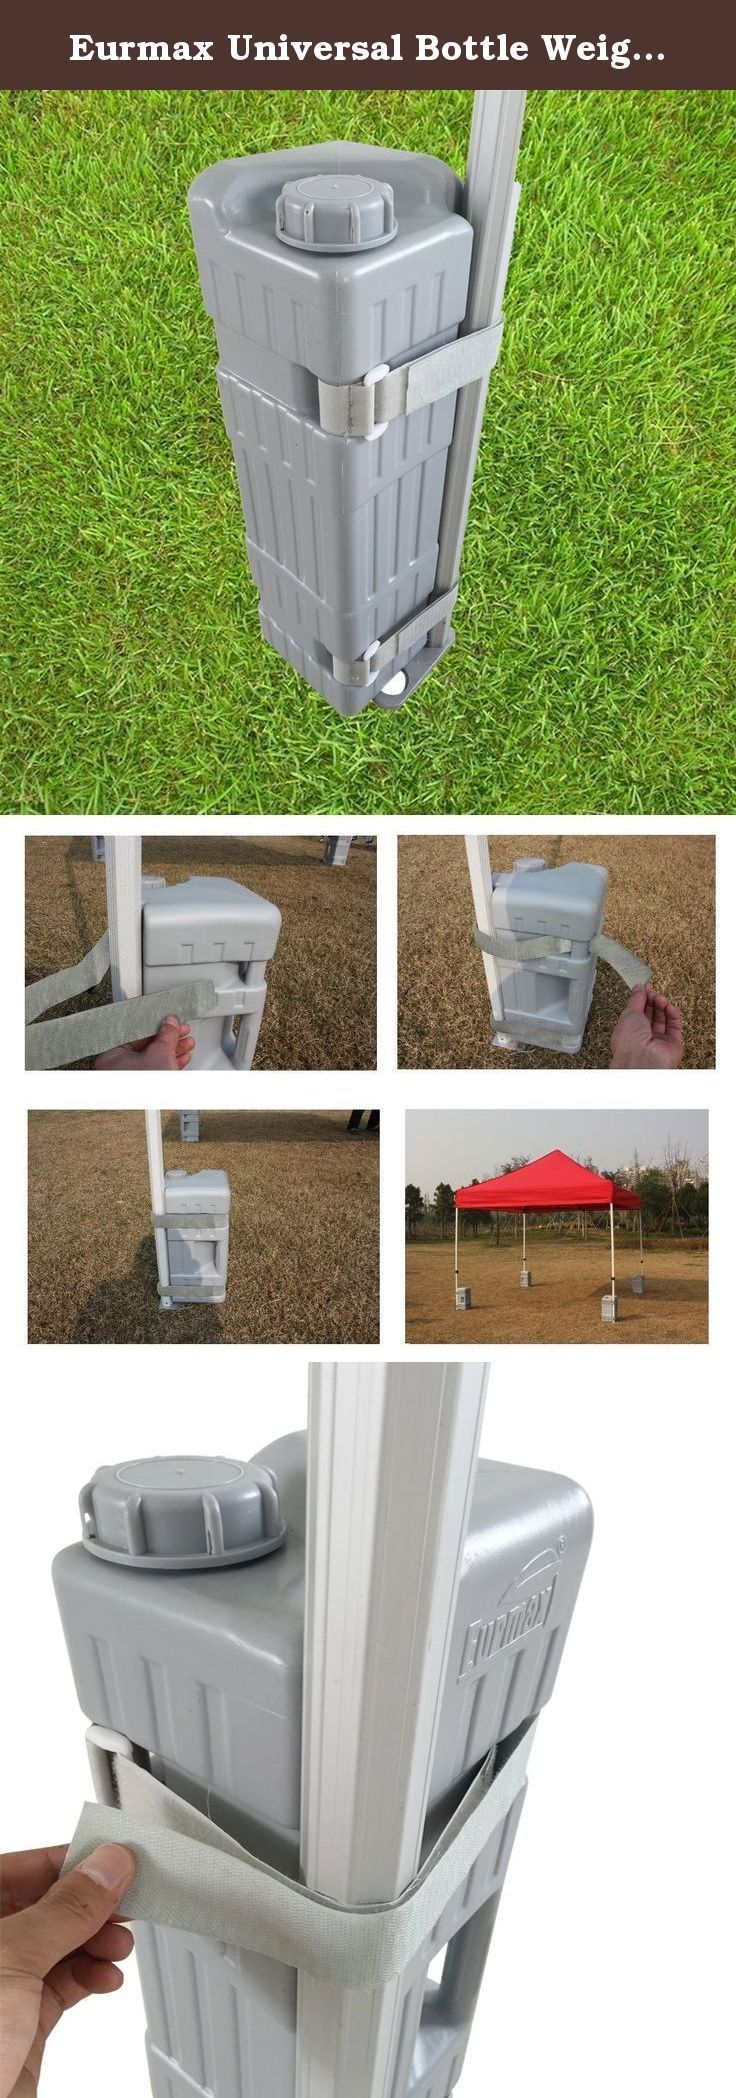 Eurmax Universal Bottle Weight Feet 2pc-pack for Pop up Canopy Tent. Adaptable to: Most instant canopy and pop-up structures in the market include Eurmax Instant Canopy, Caravan Instant Canopies, Impact Instant Canopies, E-Z UP Instant Shelters, Quick Shade, Costco, Sam's Club etc.